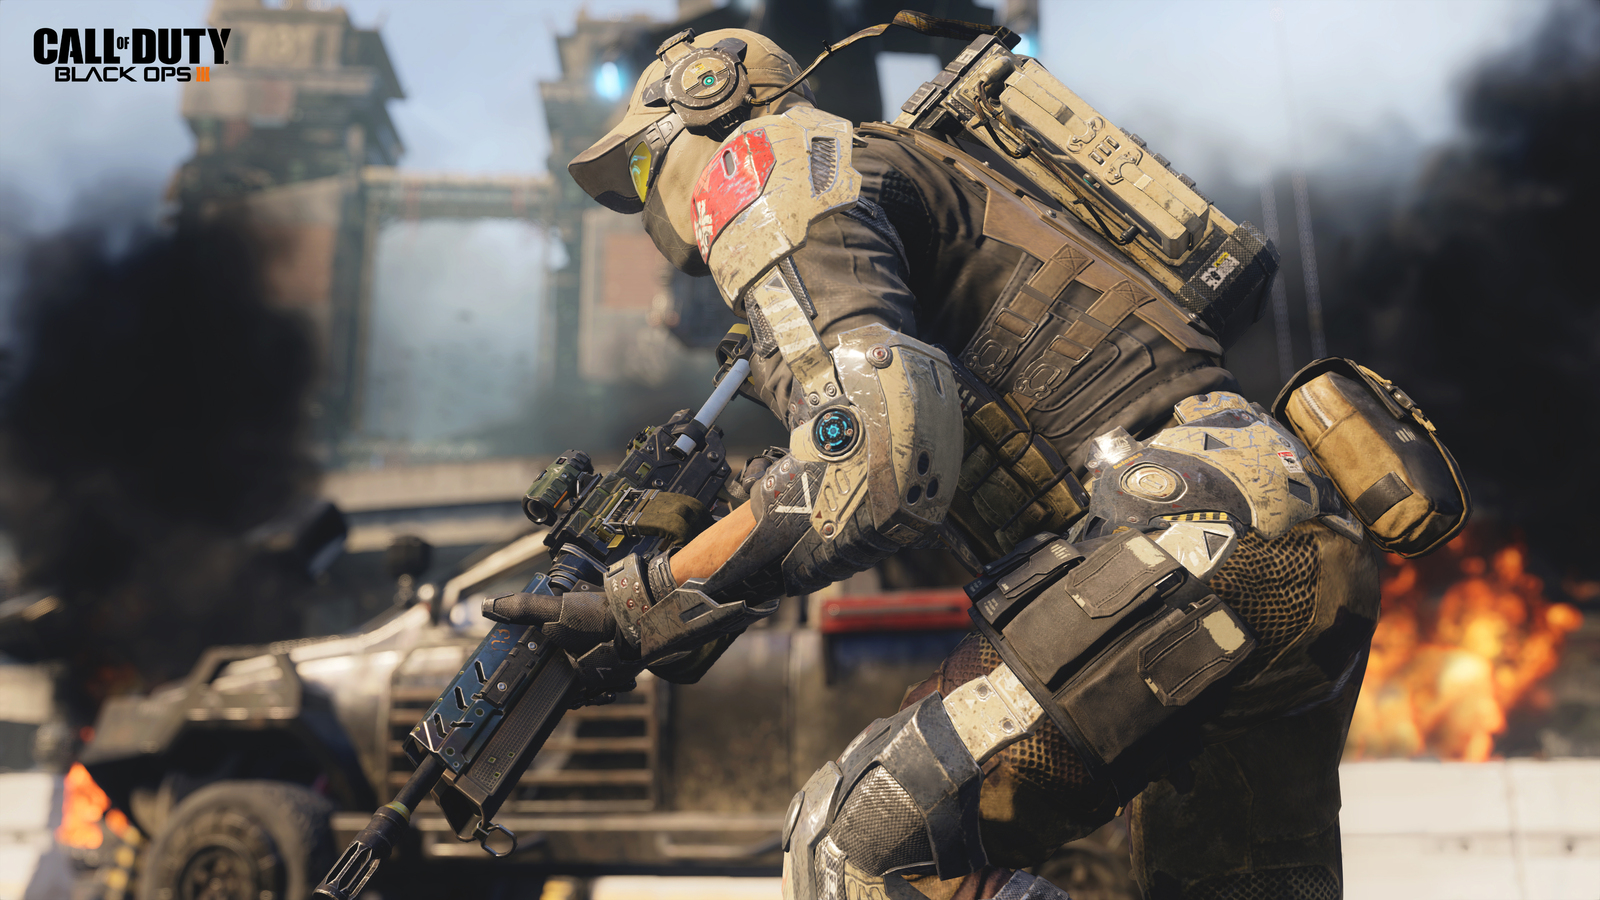 Call of Duty: Black Ops III for PS4 image